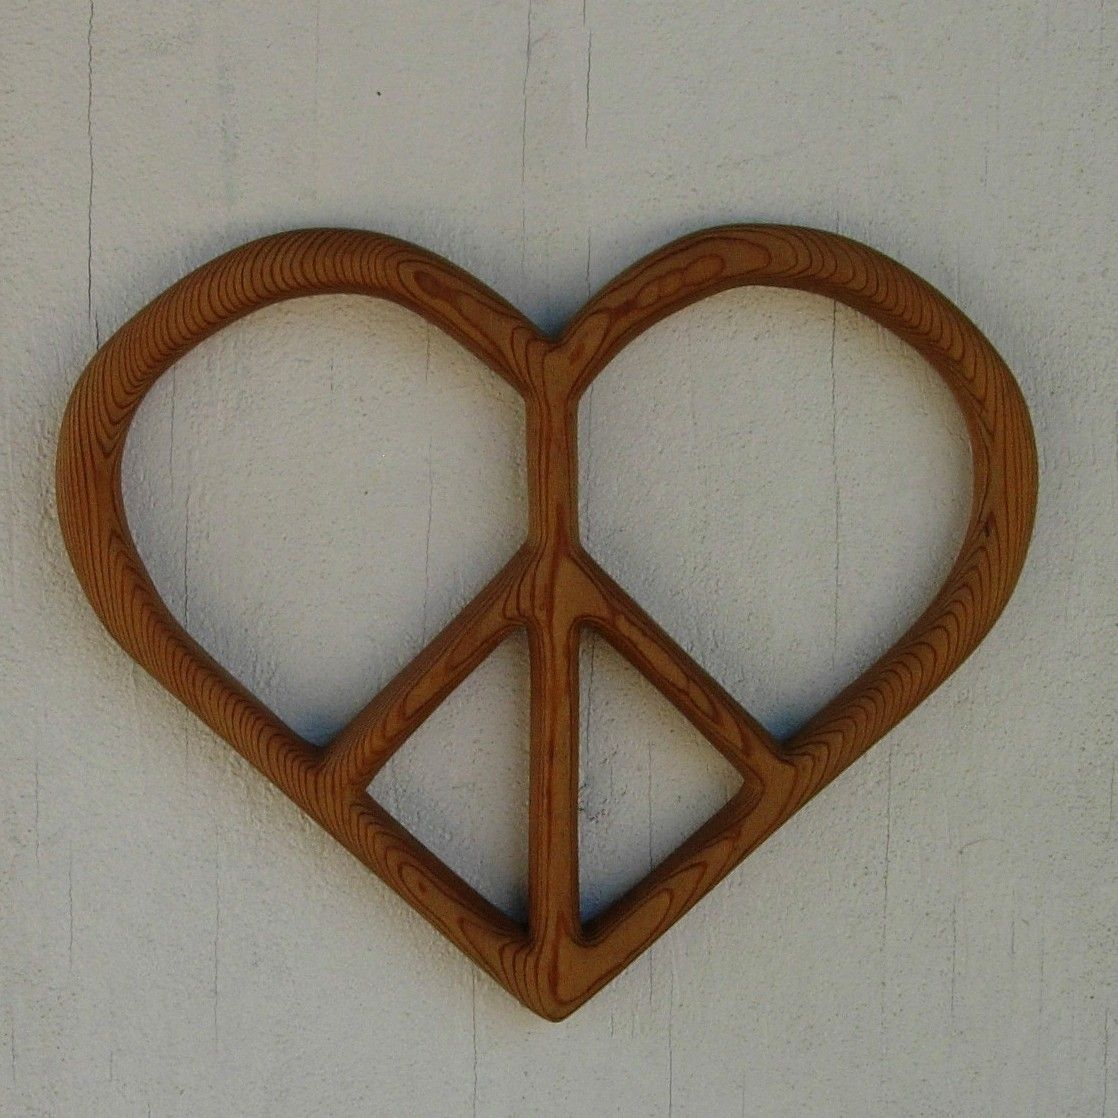 Peace and love heart shaped peace sign heart shapes peace and peace and love heart shaped peace sign biocorpaavc